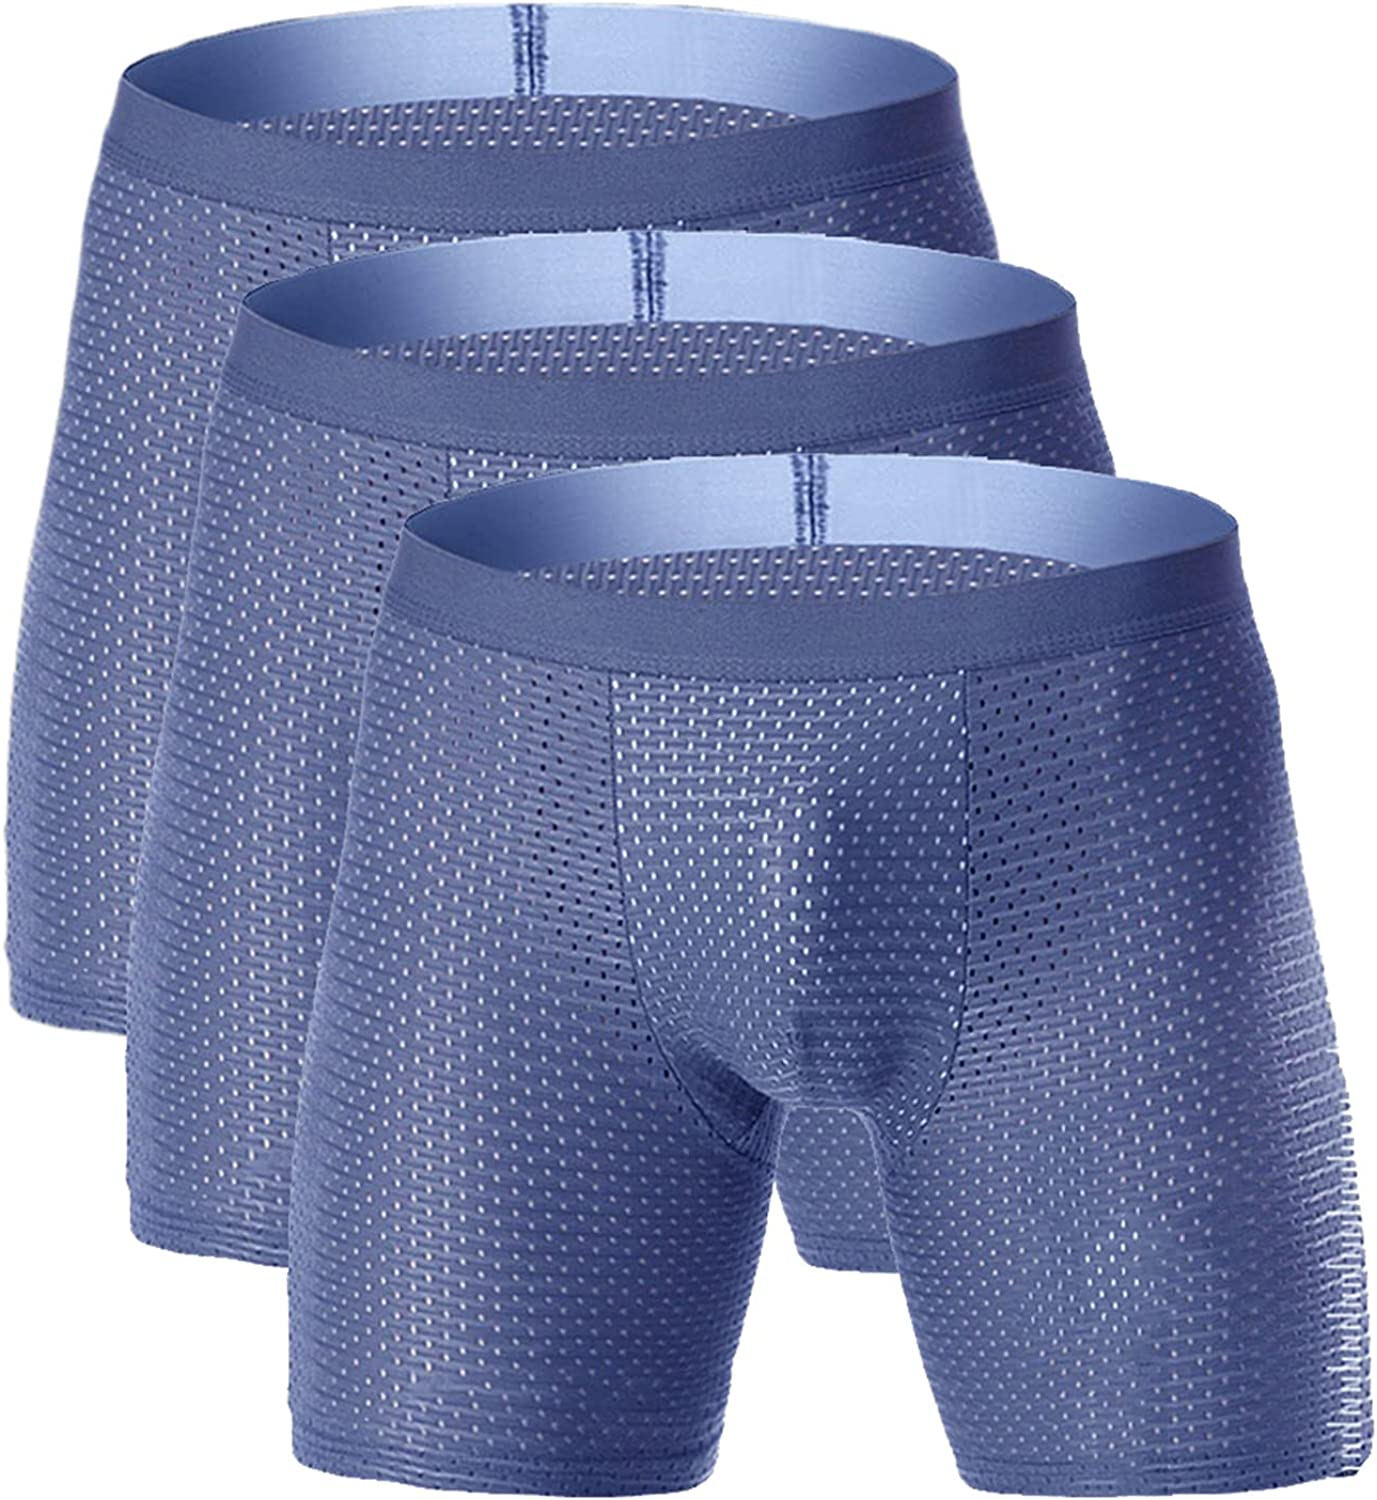 Andongnywell Men's Silky ice Mesh Boxer Briefs Breathable Men's Stretchy Underwear quick-drying panties 3 Pack